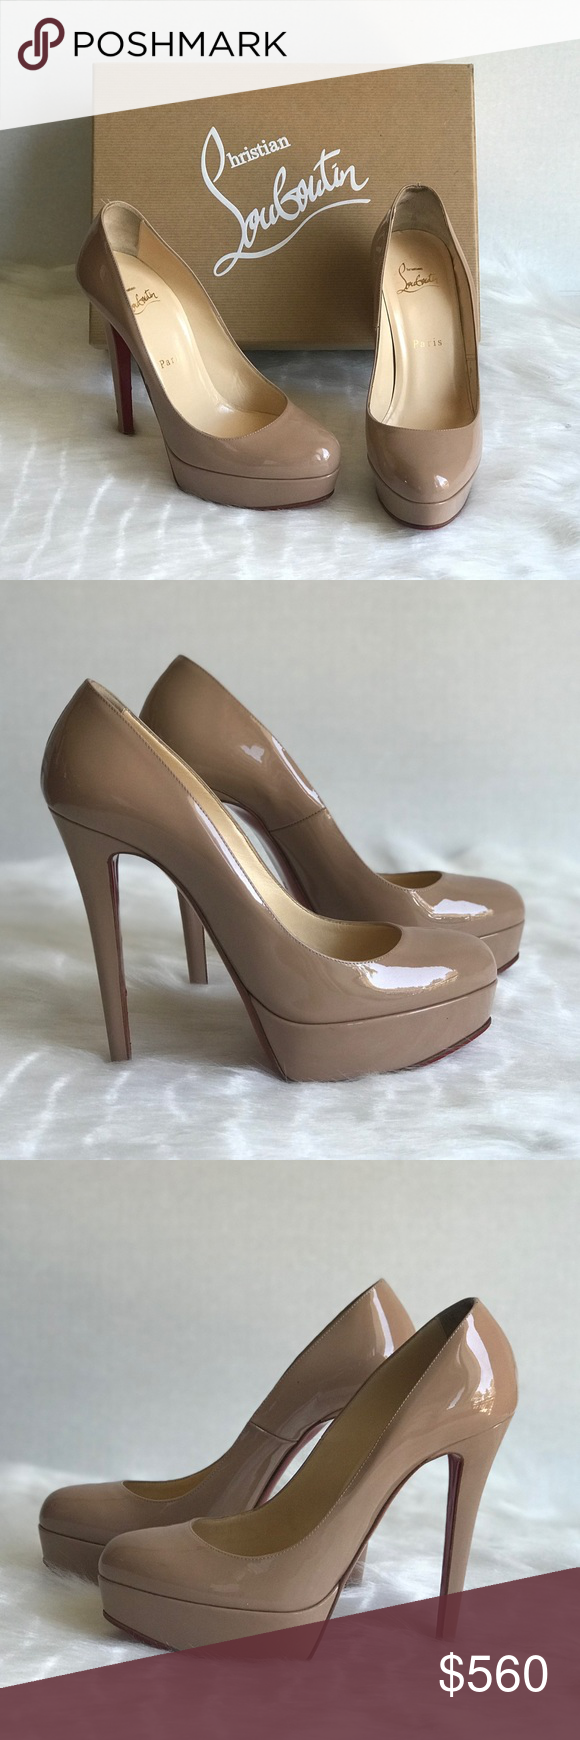 4000bcfb6c6c Christian Louboutin Bianca Pumps Size 37 Like New condition!! Box and dust  bag included! Size 37!! 100% authentic!! Christian Louboutin Shoes Heels